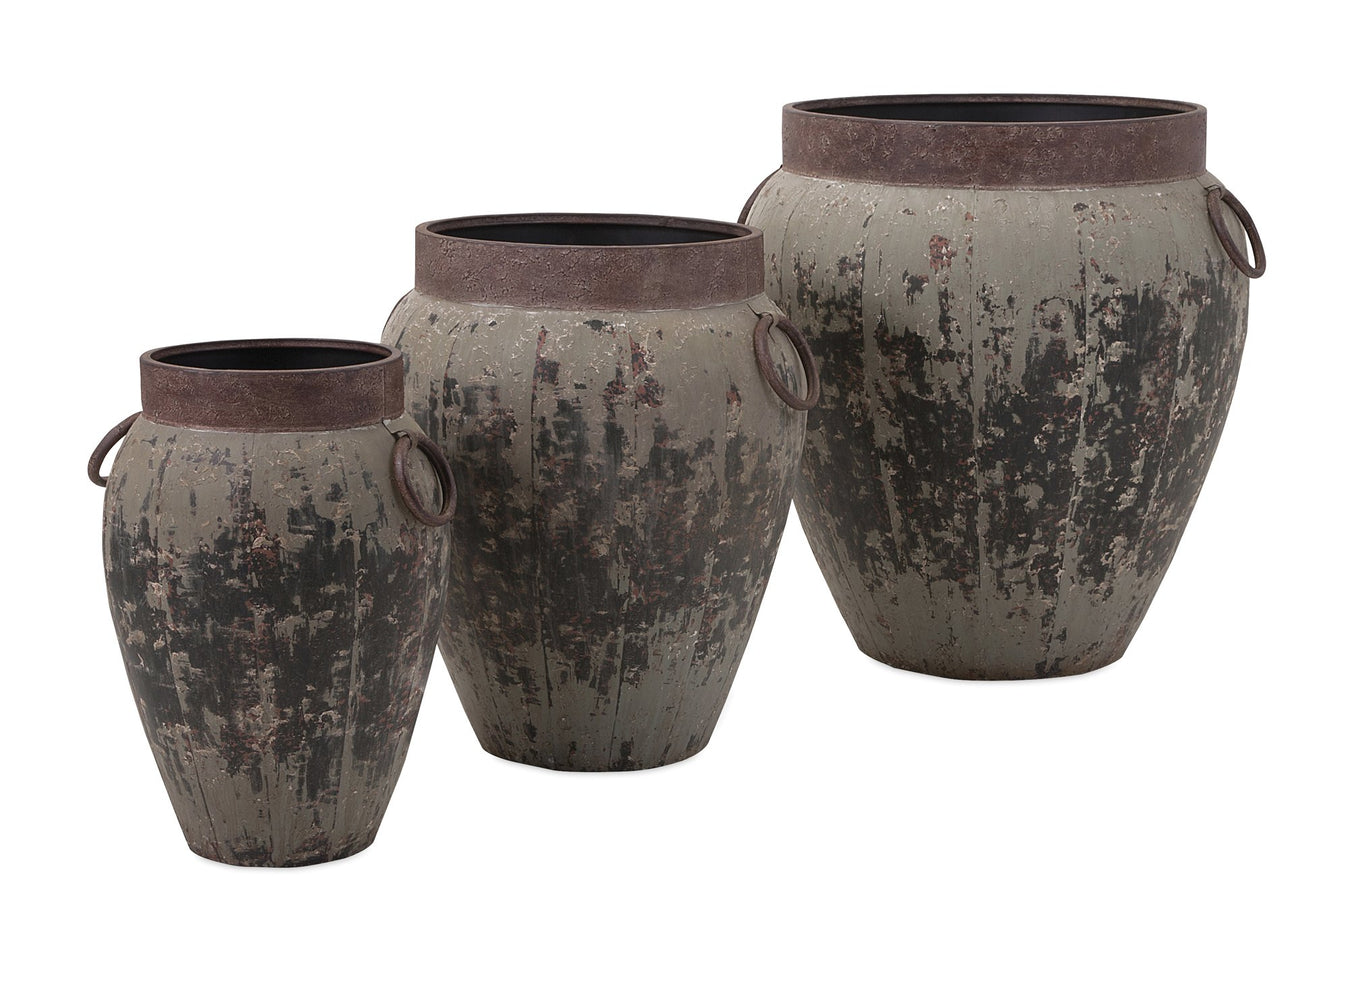 Argetile-Rustic-Planters